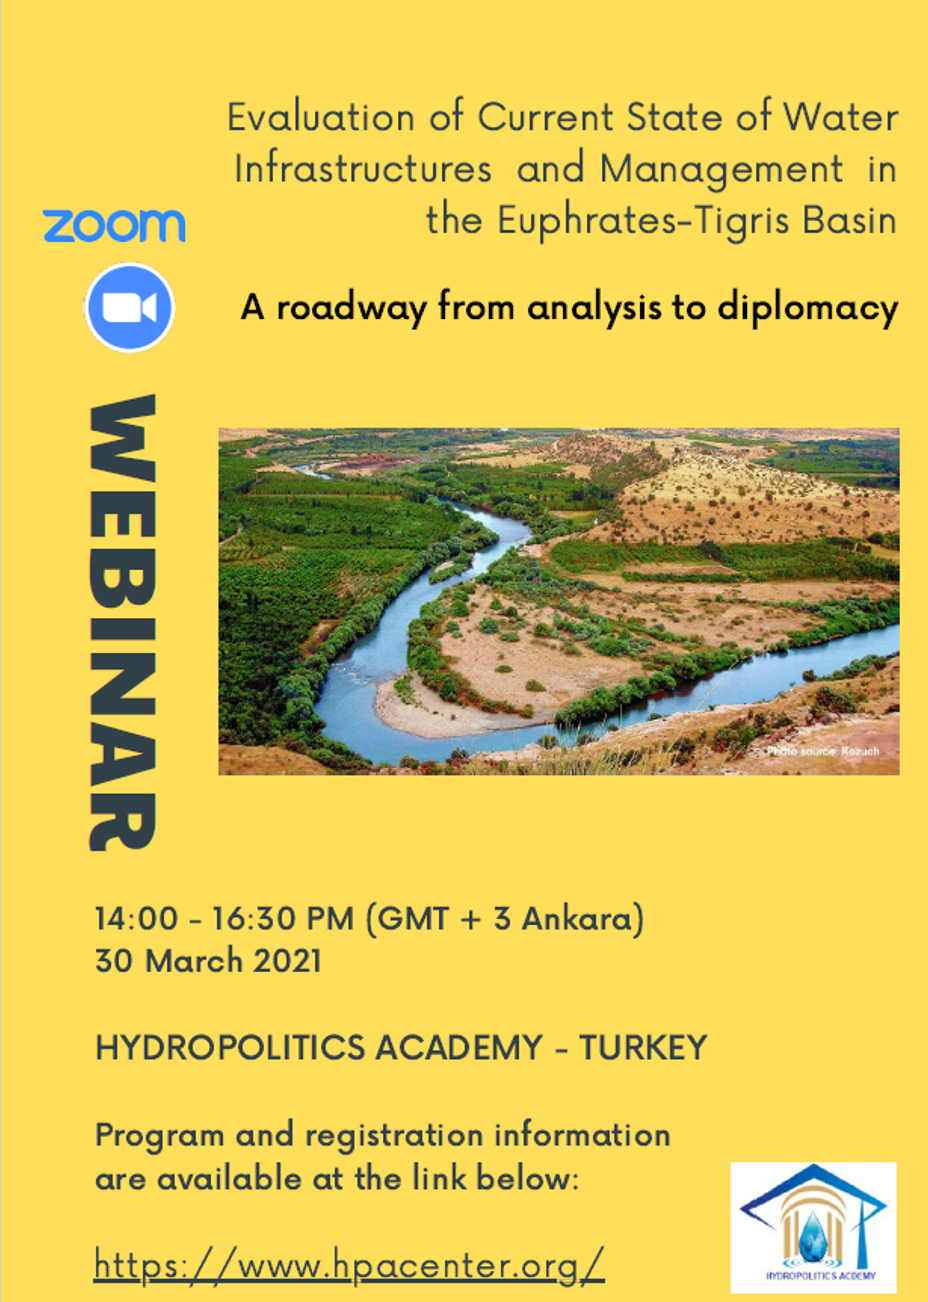 EVALUATION  of  CURRENT STATE of WATER INFRASTRUCTURE and MANAGEMENT in the EUPHRATES _TIGRIS BASIN